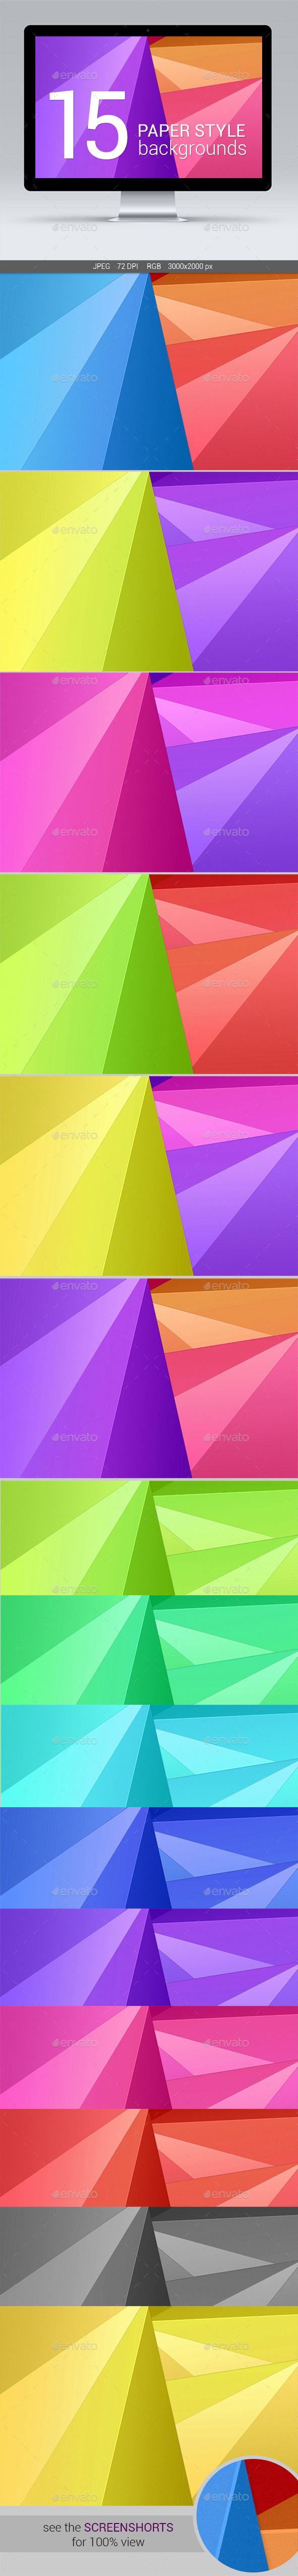 GraphicRiver 15 Paper Style Backgrounds 11592675